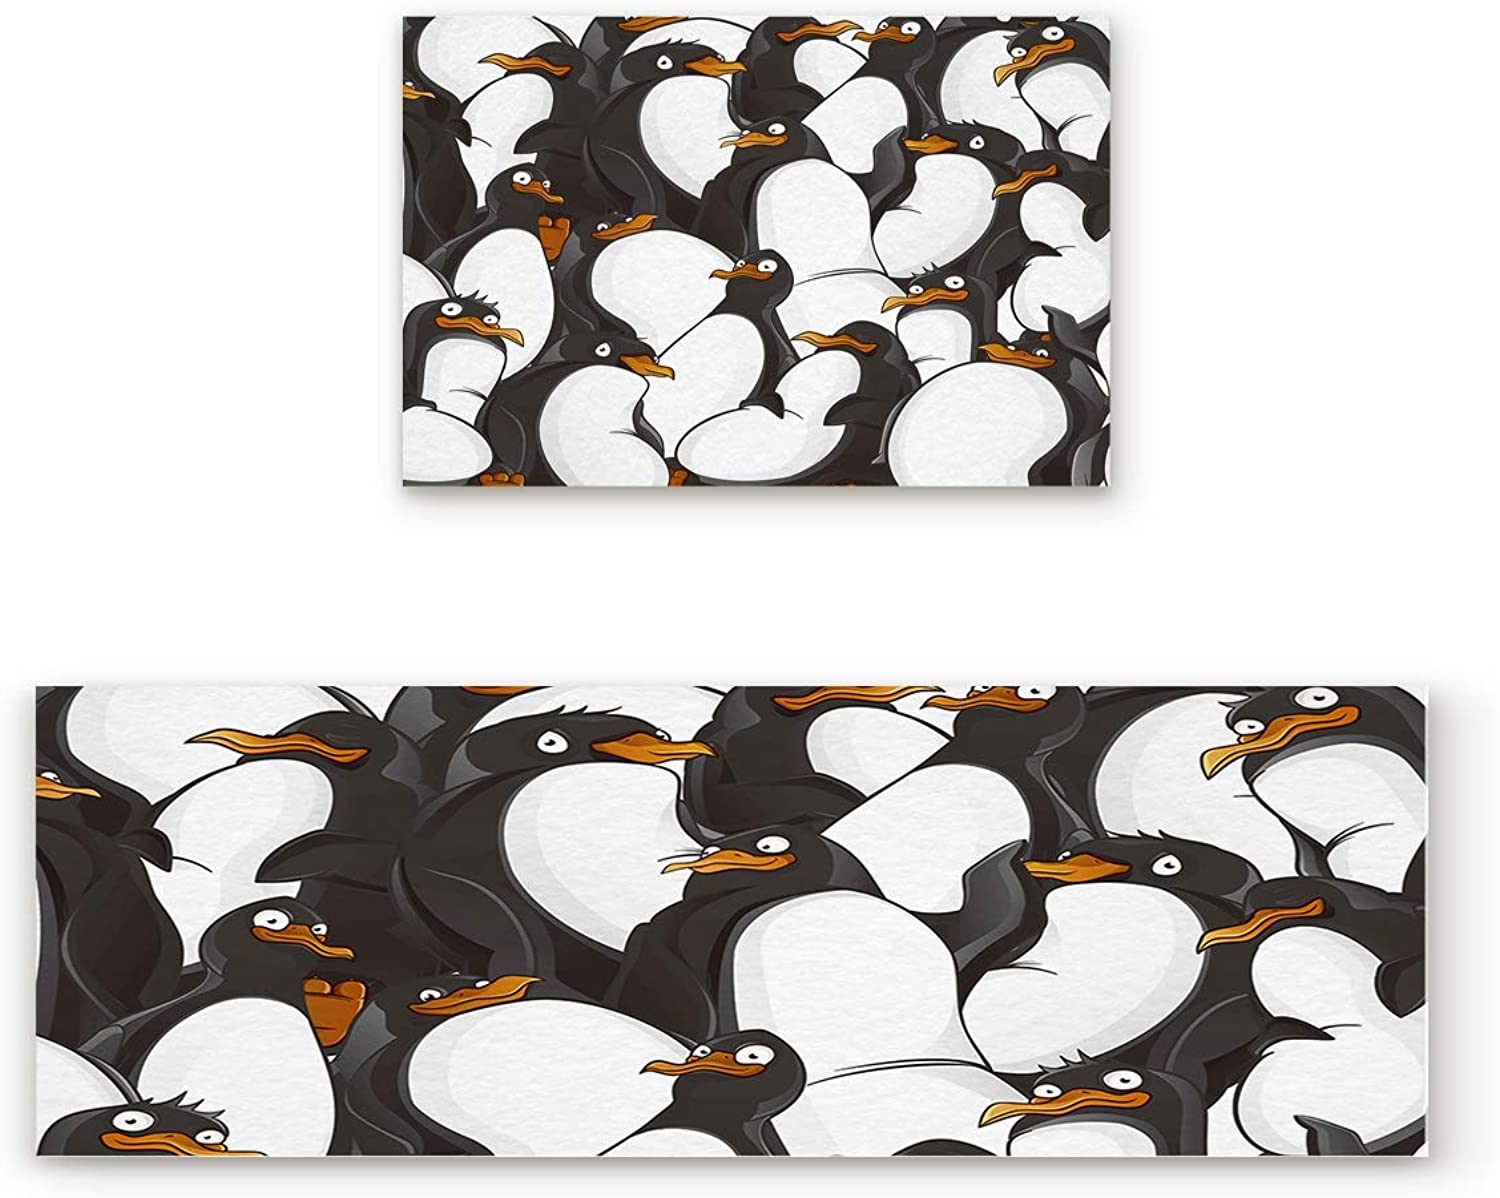 Libaoge Non-Skid Slip Rubber Backing Kitchen Mat Runner Area Rug Doormat Set, Penguin Doormats, Black and White Animal Pattern Carpet Indoor Floor Mats Door 2 Packs, 15.7 x23.6 +15.7 x47.2